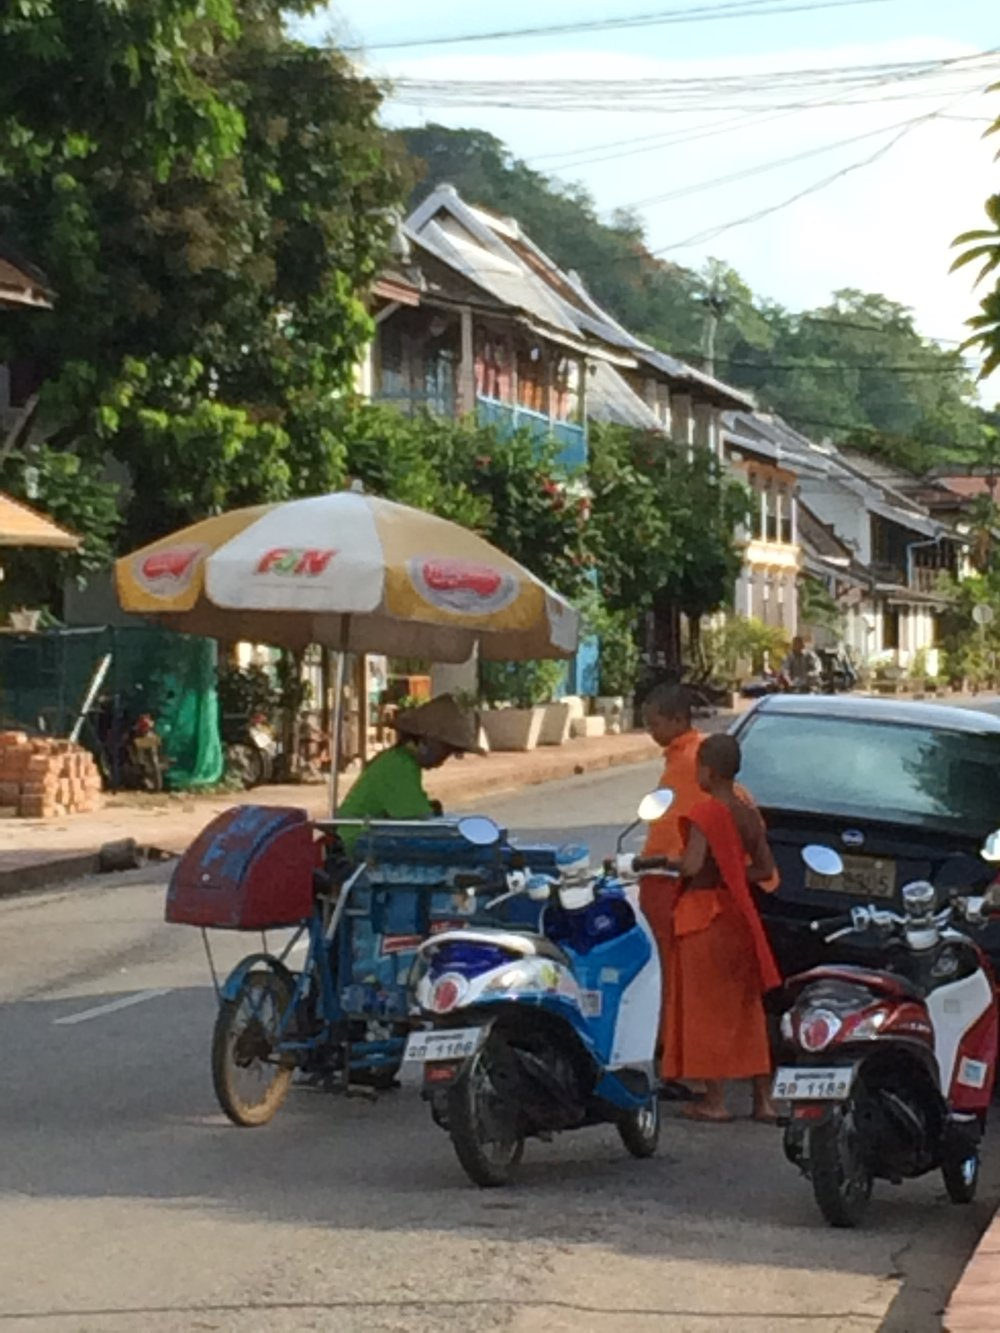 So monks can get ice cream, listen to ipods, and take selfies?